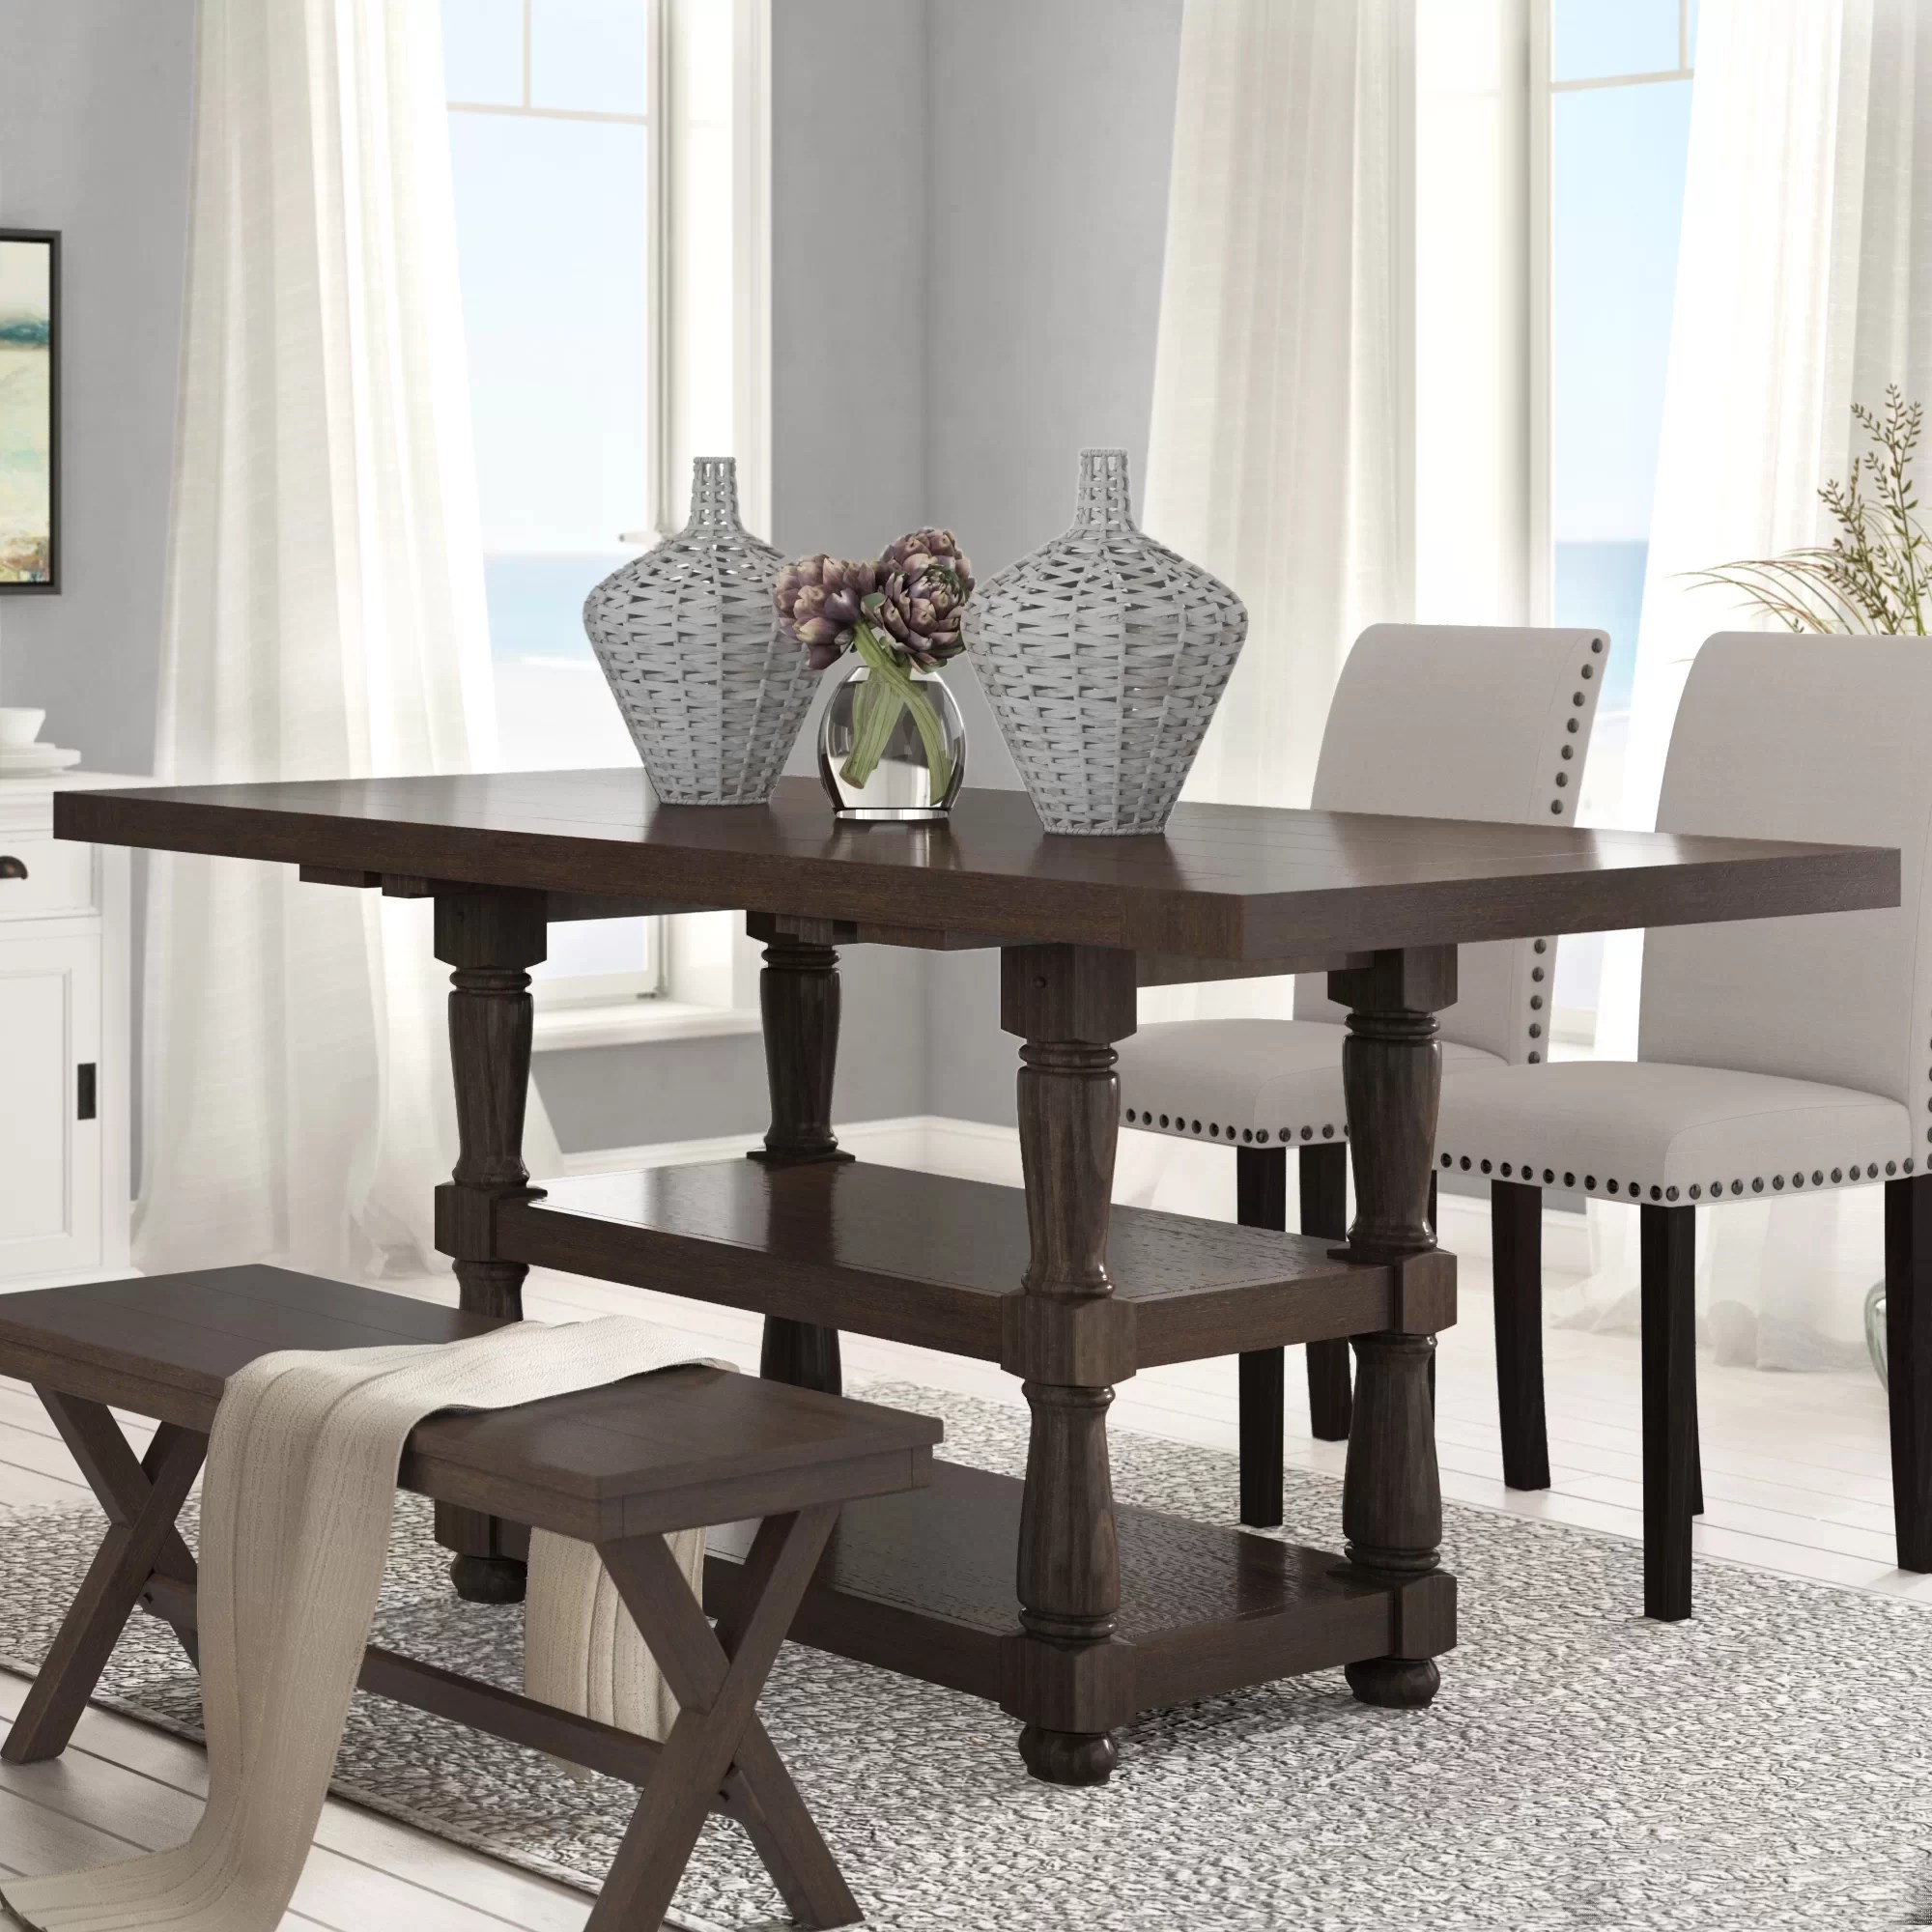 Laurel Foundry Modern Farmhouse Fortunat Counter Height Extendable Butterfly Leaf Dining Table Reviews Wayfair